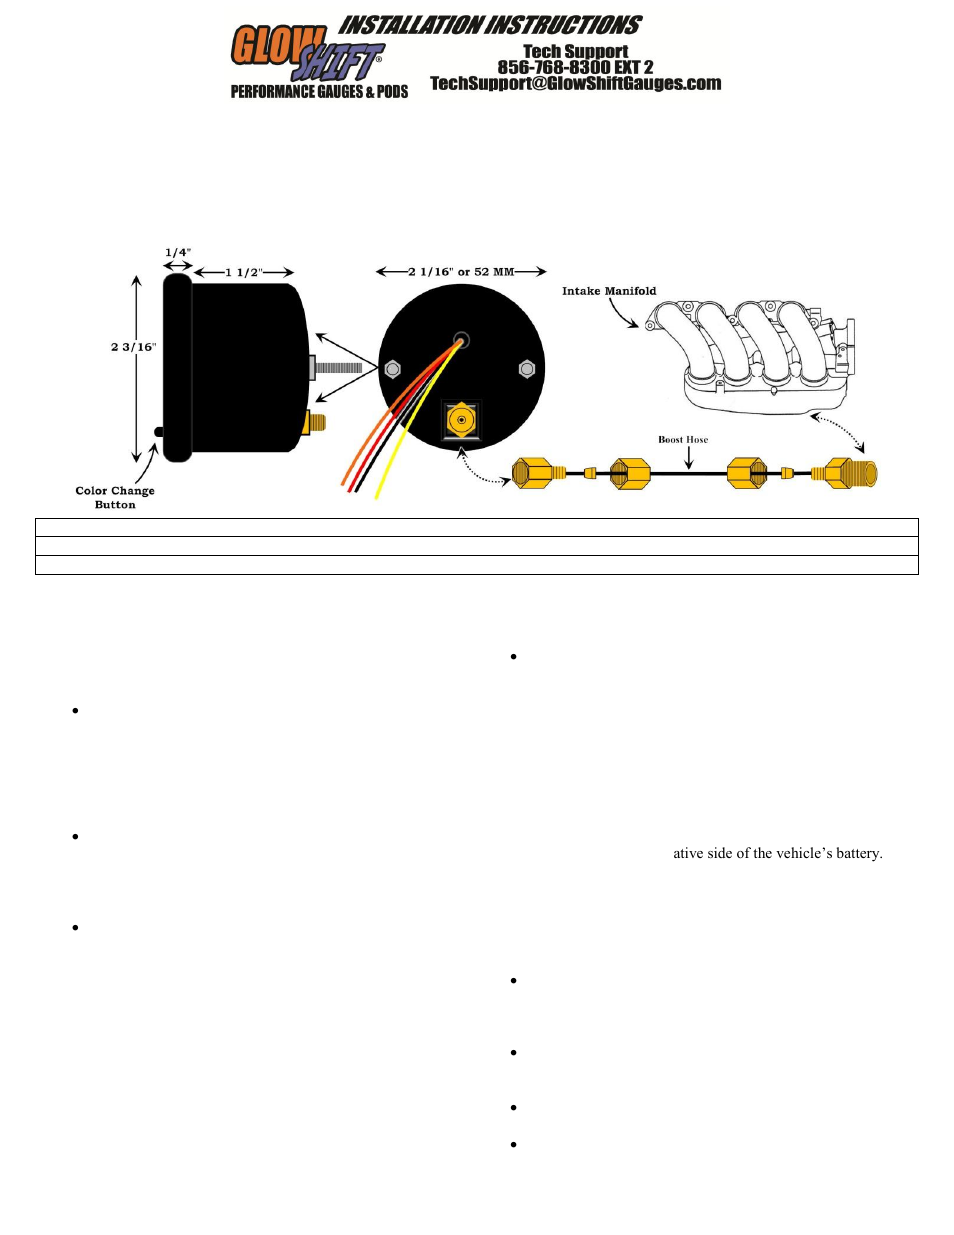 Wrx Glowshift Wiring Diagram